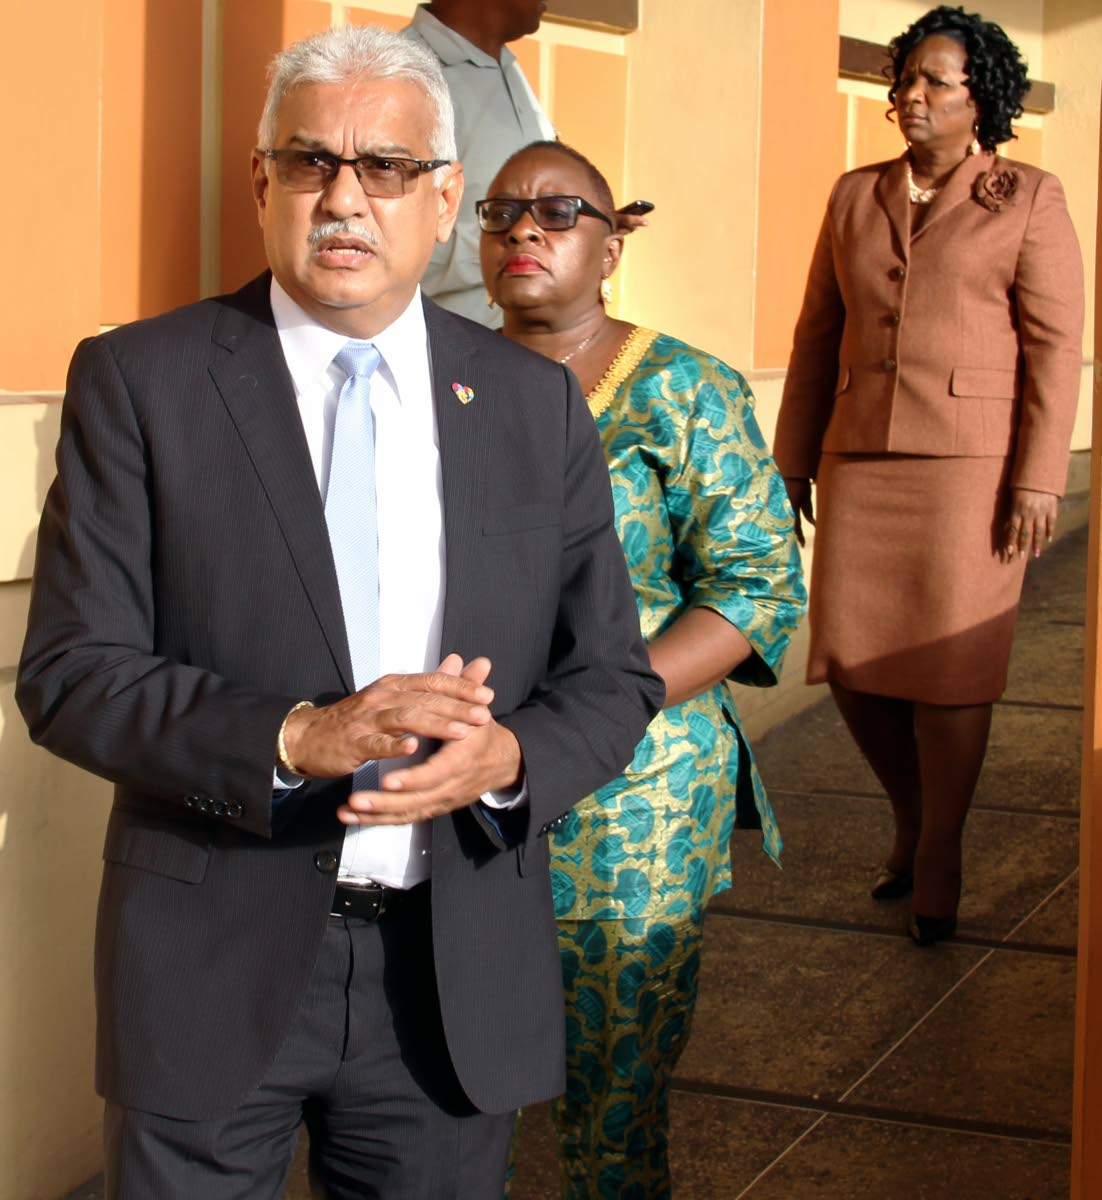 WORRIED MINISTERS: Health Minister Terrence Deyalsingh, Planning and Development Minister Camille Robinson-Regis, centre, and Social Development and Family Service Minister Cherrie-Ann Crichlow-Cockburn at the Port of Spain General Hospital yesterday where they visited their ailing colleague Marlene McDonald. PHOTO BY SUREASH CHOLAI